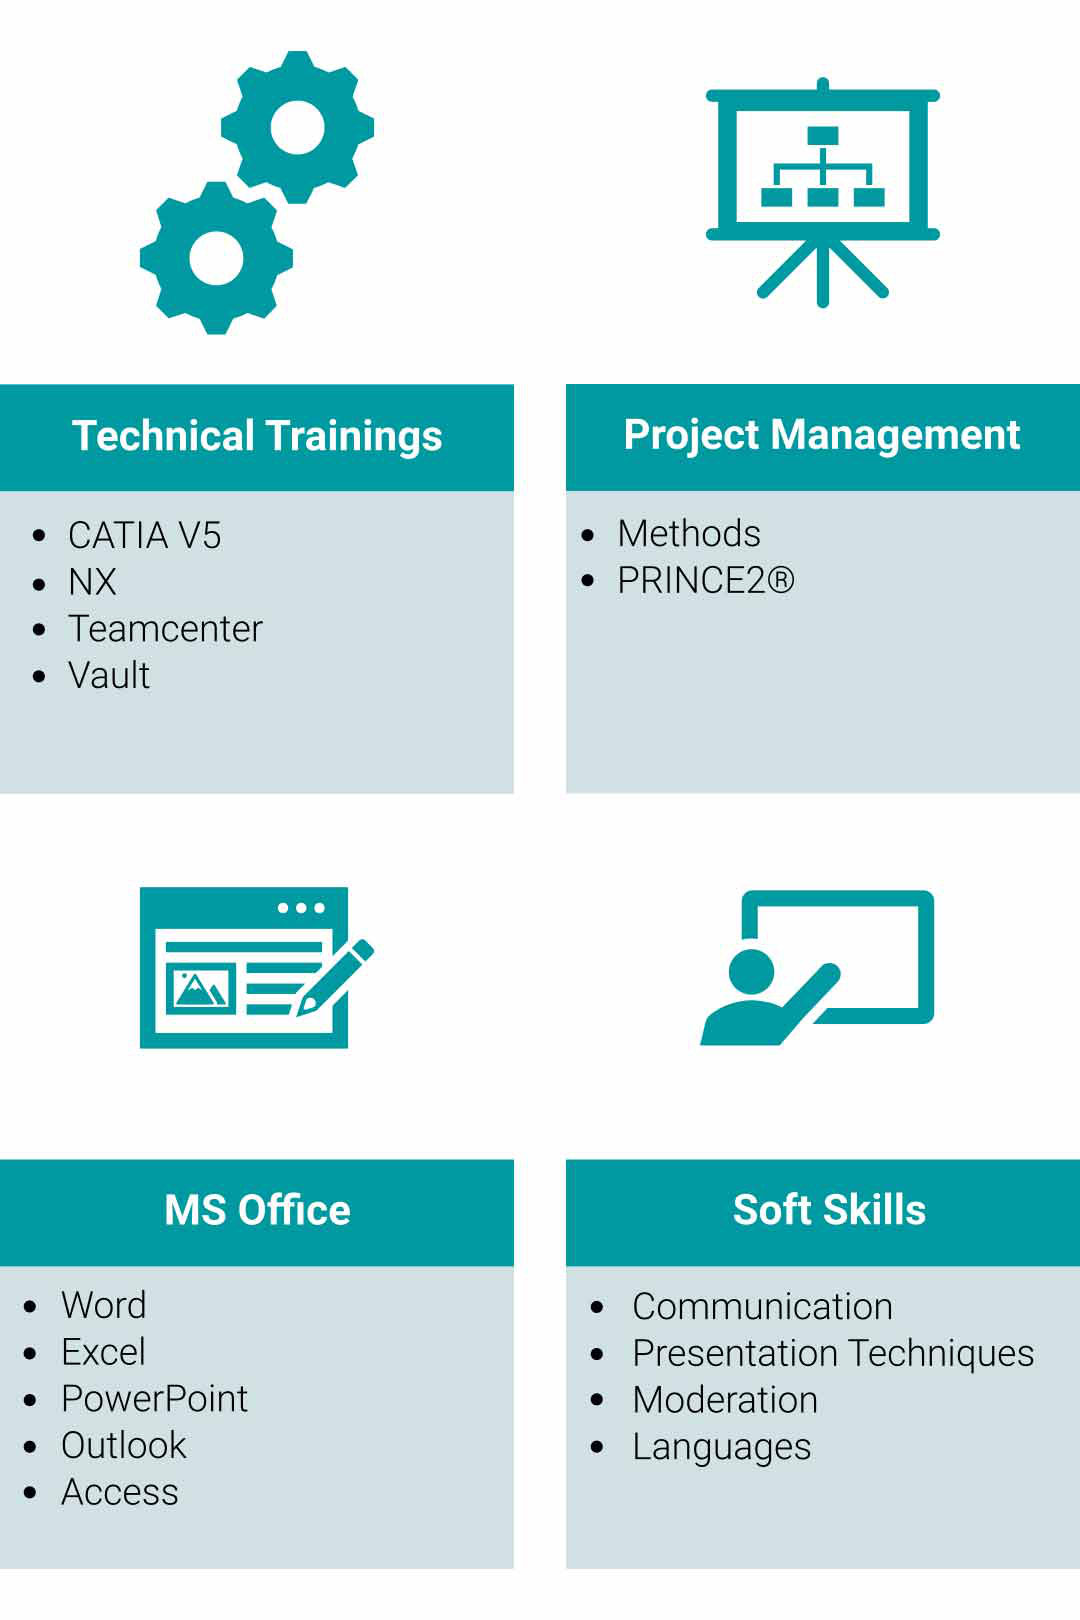 paXos Training Sectors: Technical Trainings, Project Management, Microsoft Office as well as Soft Skills